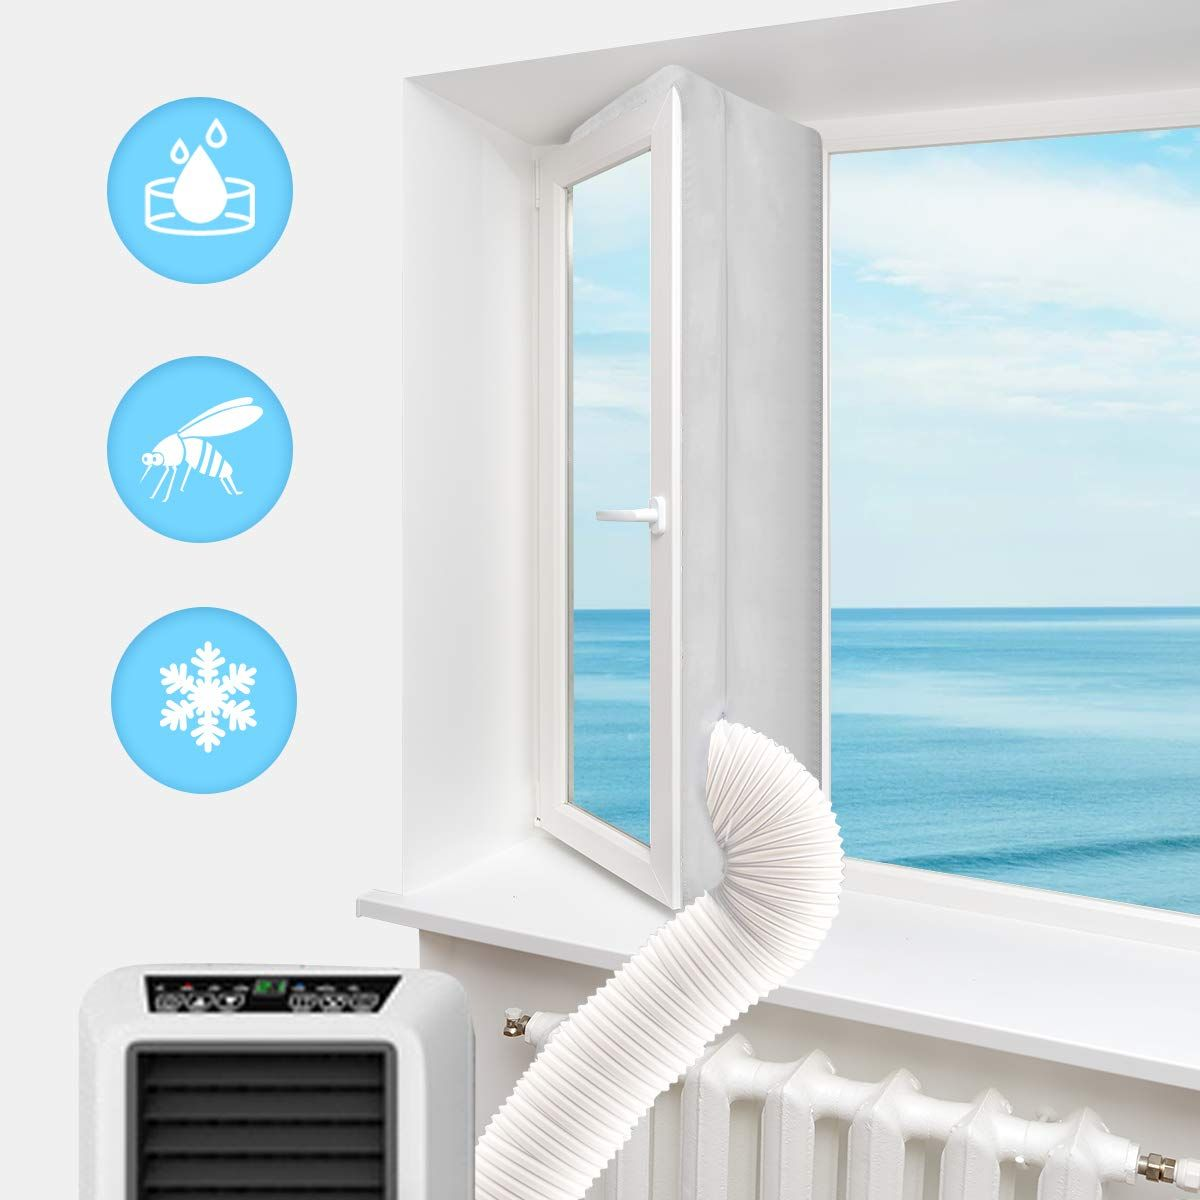 Portable Air Conditioner Window Seal Kit Luxiv 158 Inches Window Seal Kit For In 2020 Portable Air Conditioner Window Mobile Air Conditioner Portable Air Conditioning